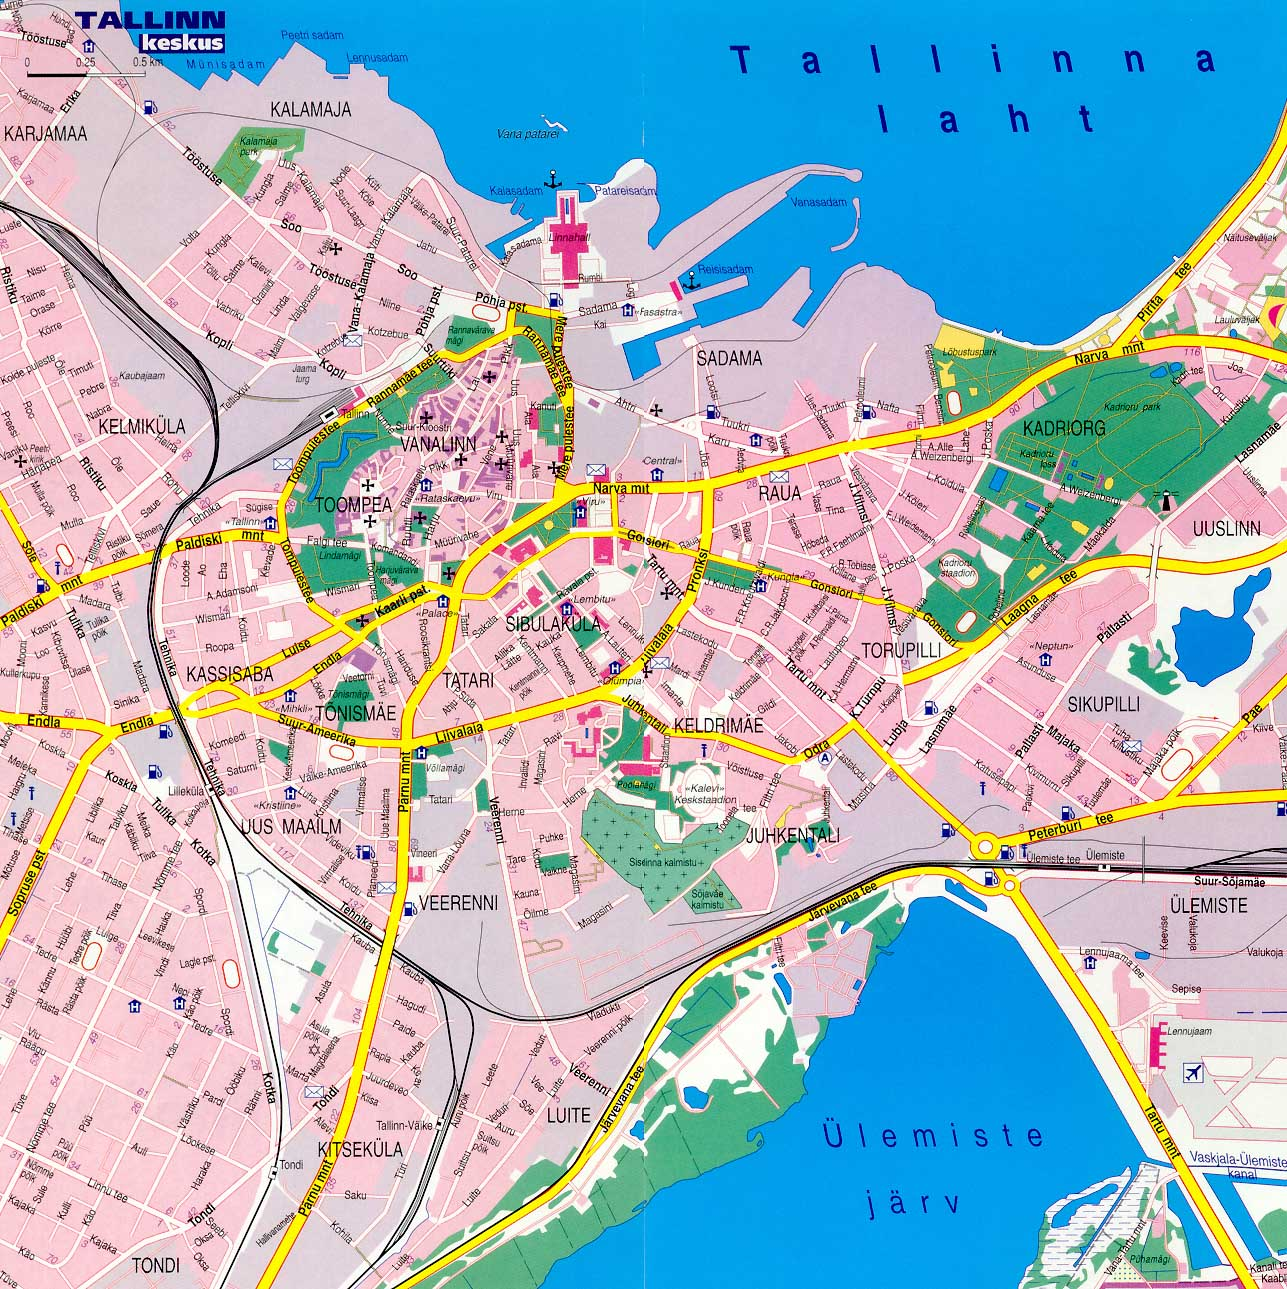 Tallinn Map Detailed City And Metro Maps Of Tallinn For Download - Tallinn map